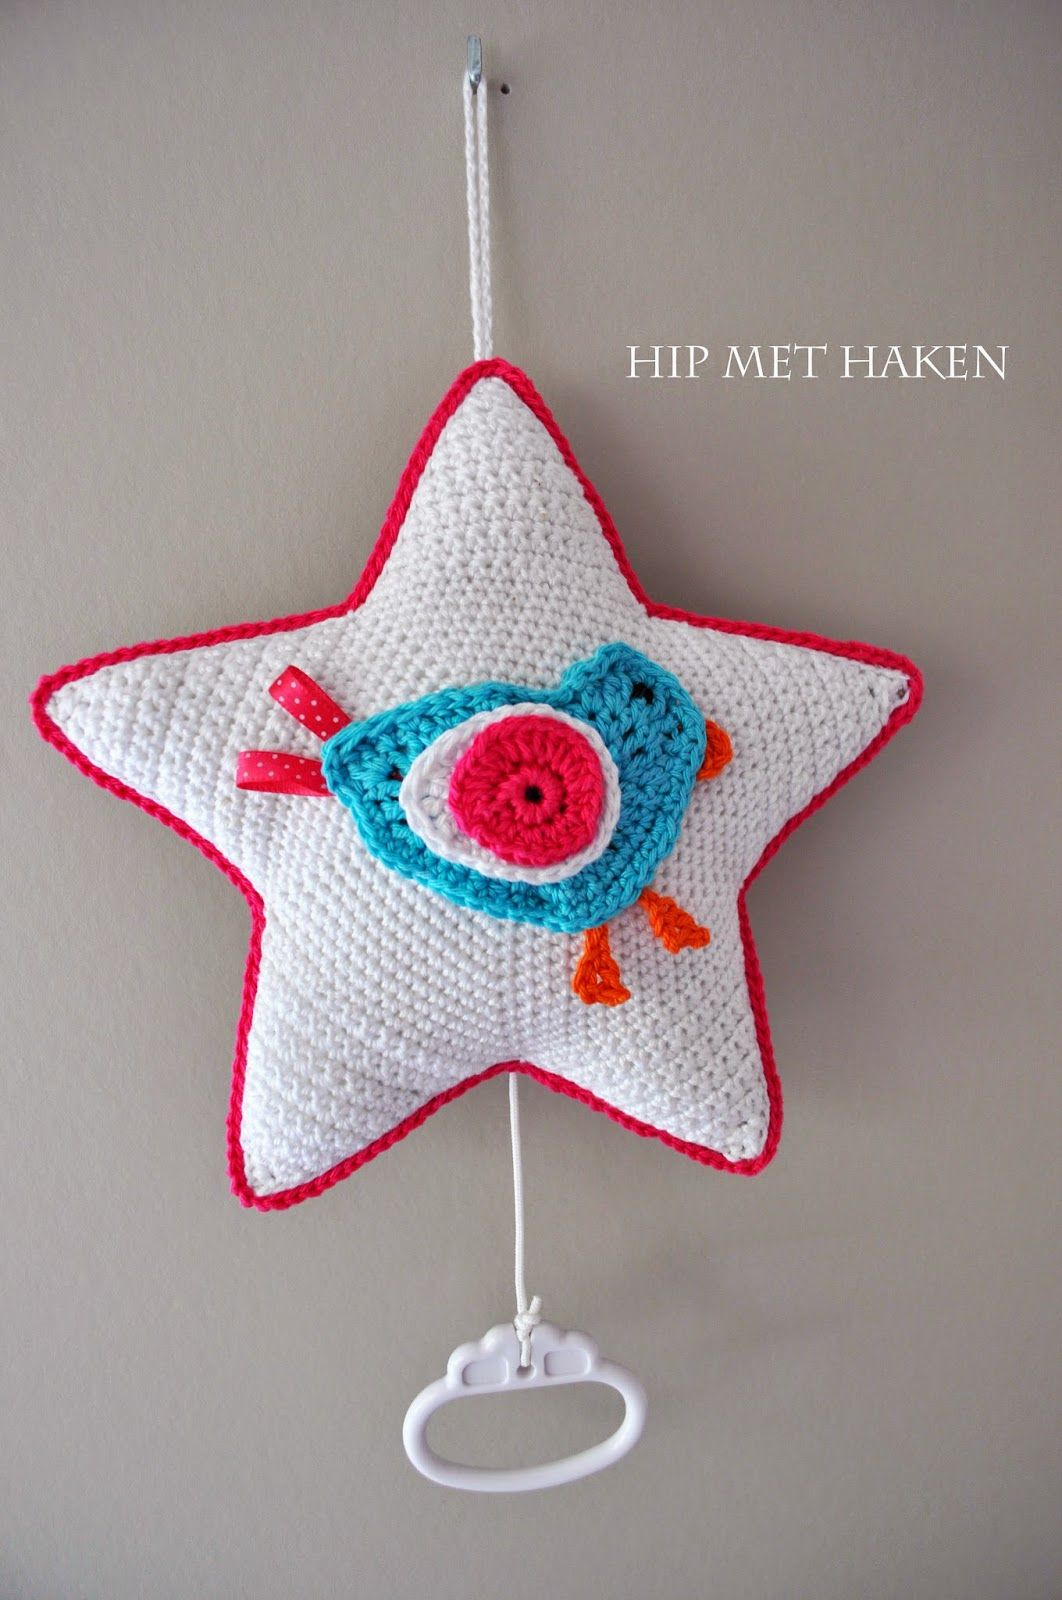 Yfp38 A Star Music Box Muziekdoos Ster From Hip Met Haken